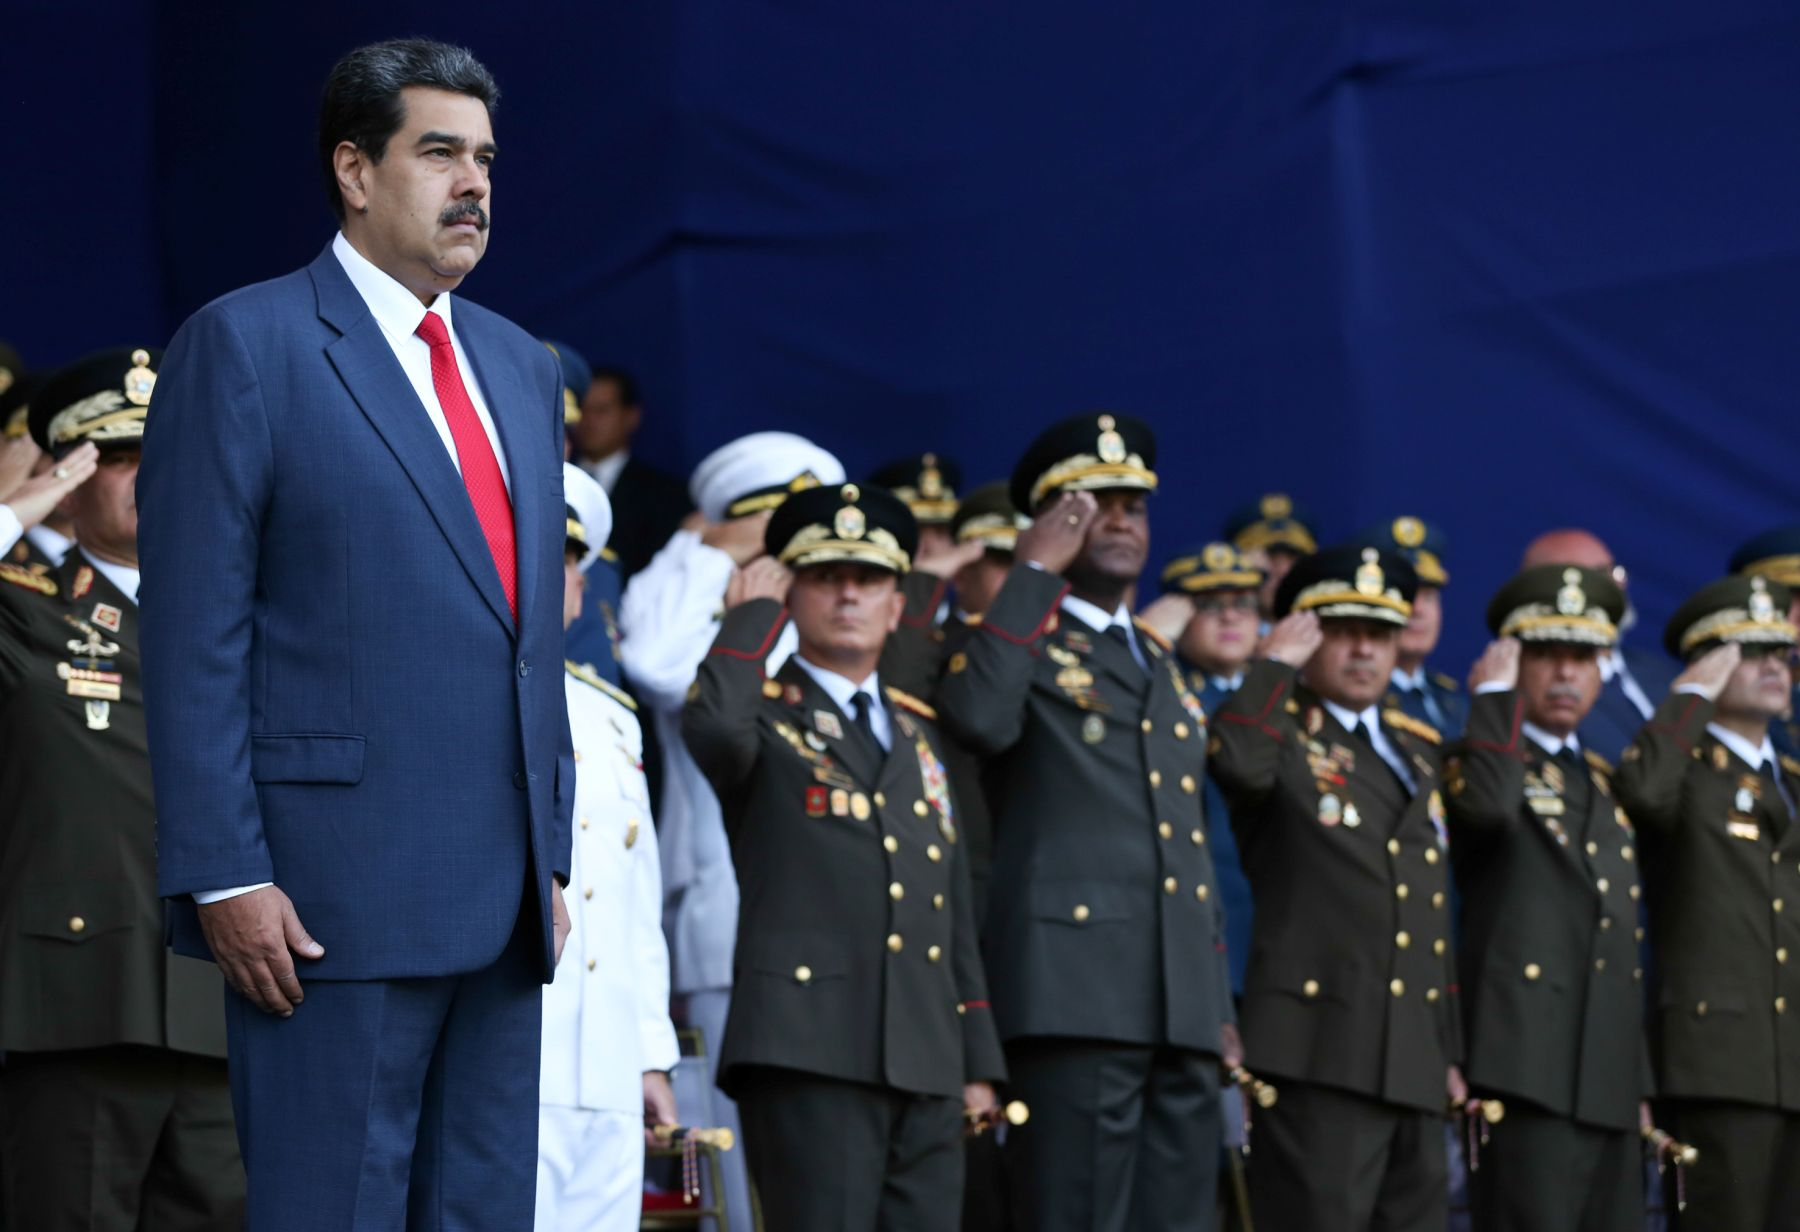 Venezuela's President Nicolas Maduro takes part in a military ceremony in Caracas